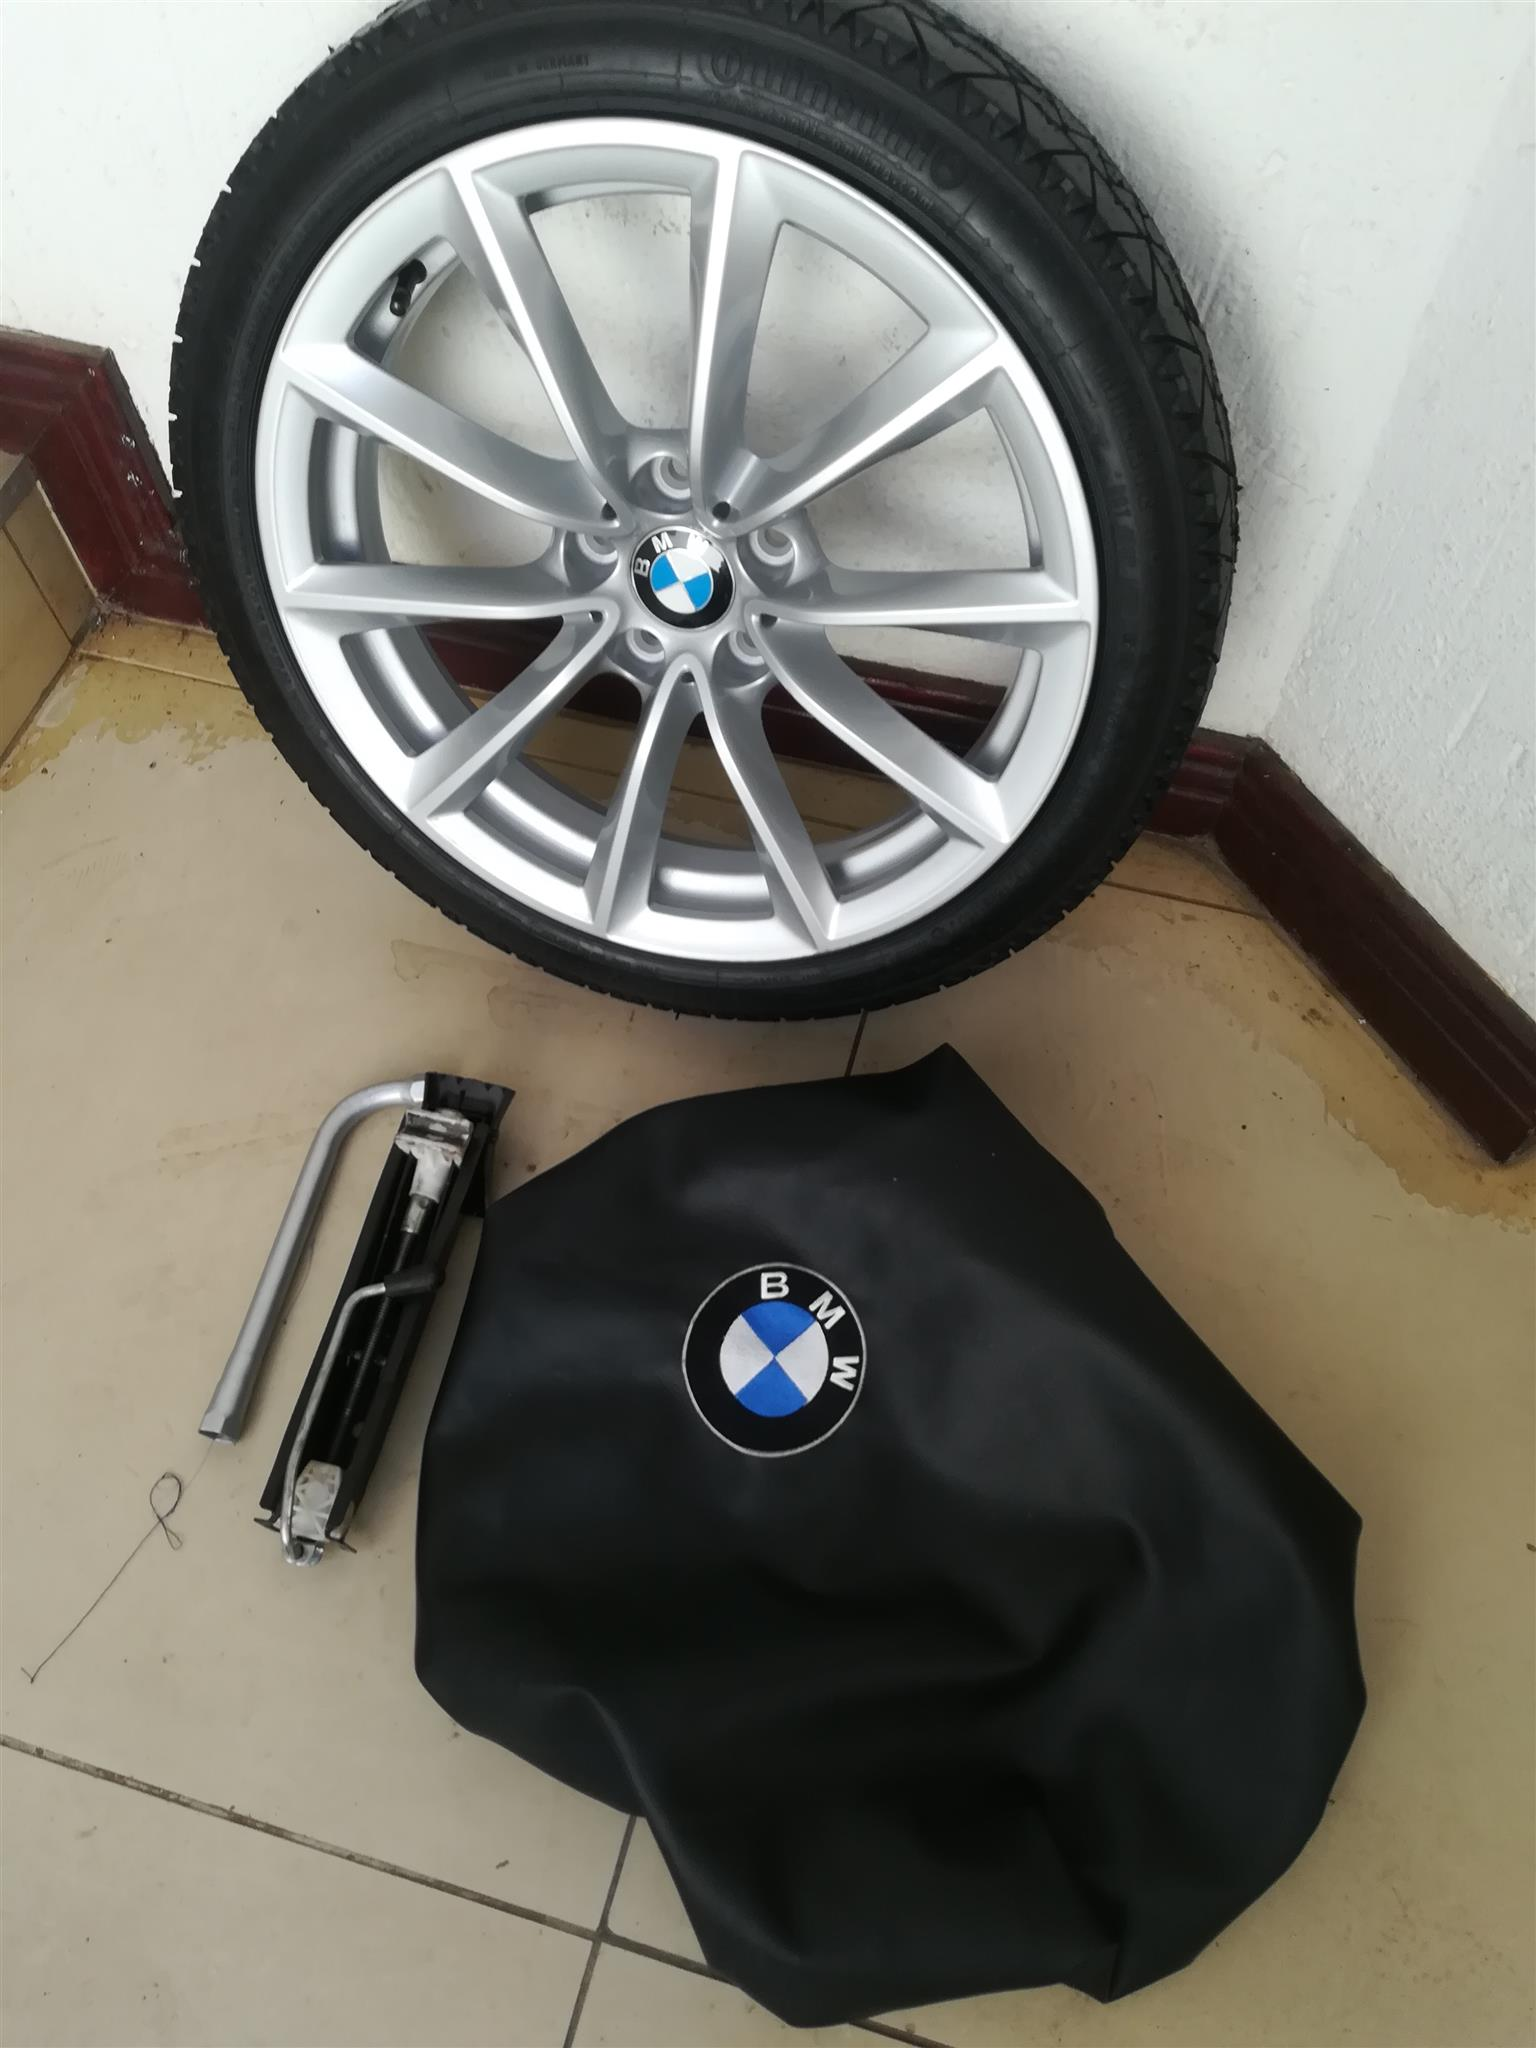 Bmw Grand Coupe 435i And 440i 19 Inch Space Saver Skinny Spare Wheel Kit Junk Mail